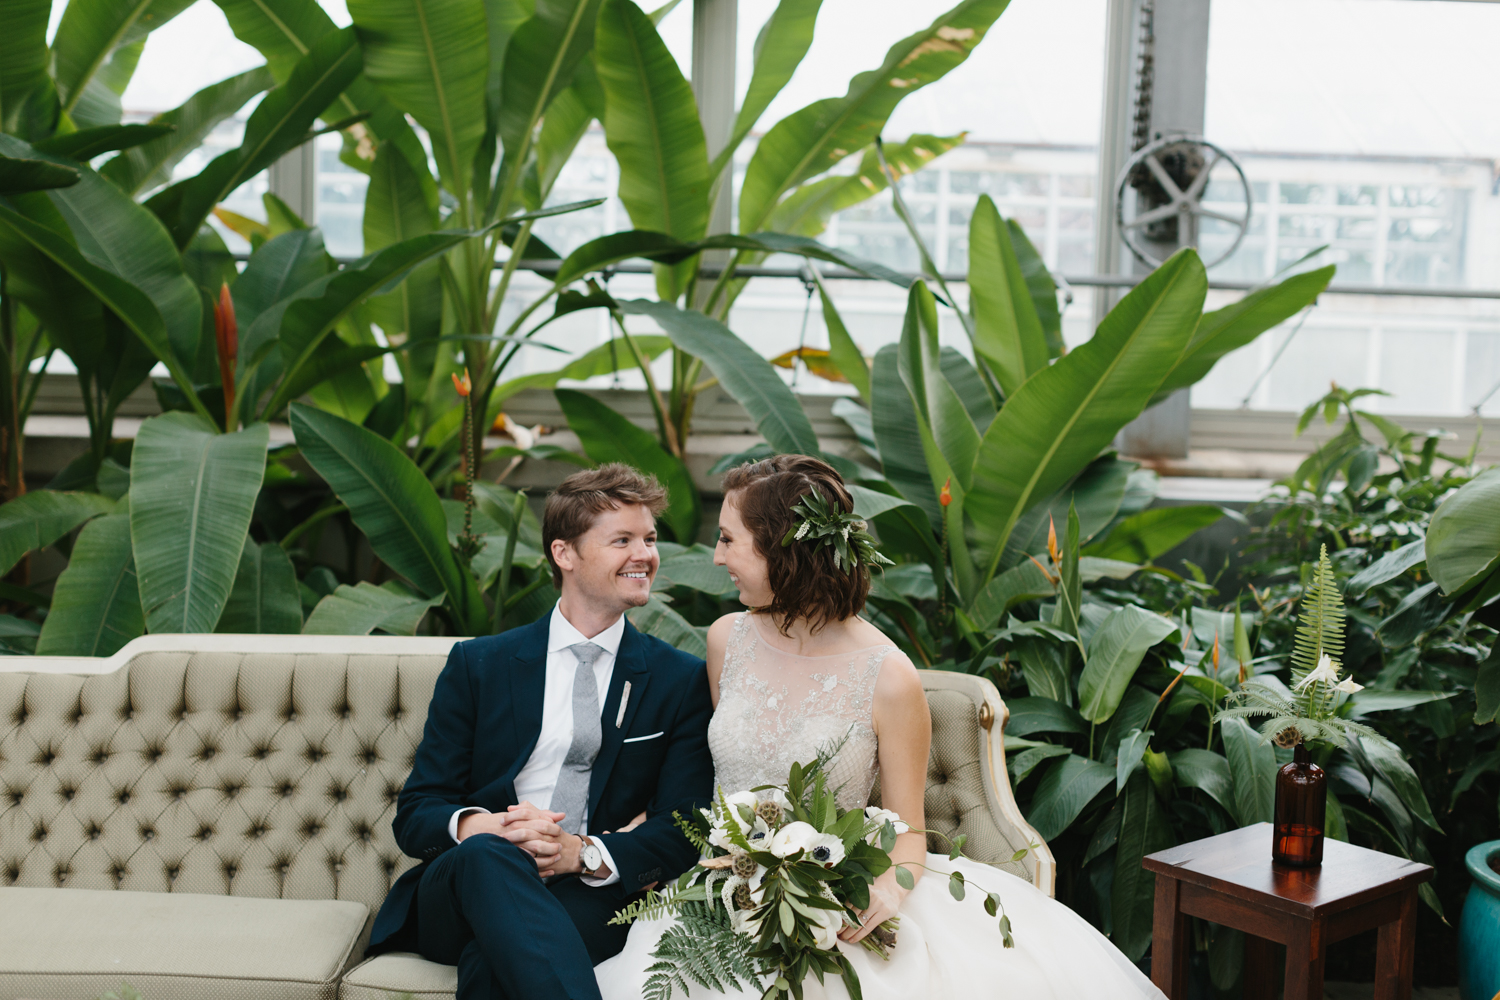 Chicago Garfield Park Conservatory Wedding by Northern Michigan Photographer Mae Stier-070.jpg